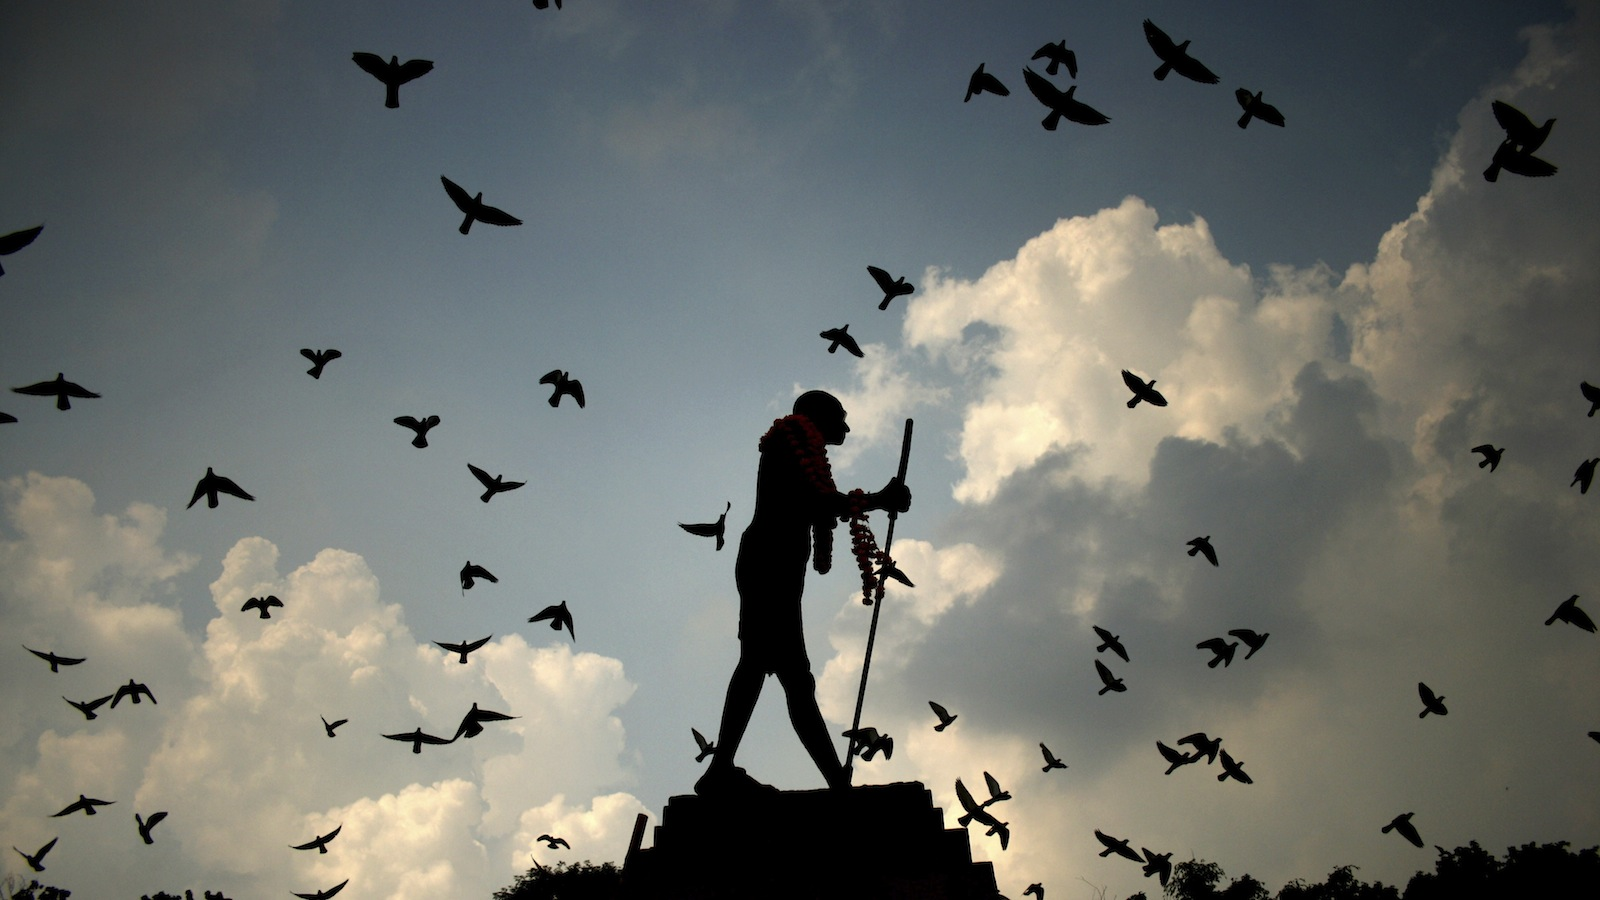 Pigeons fly behind a silhouetted statue of Mahatma Gandhi adorned with garlands on Gandhi's birth anniversary in Amritsar, India Wednesday, Oct. 2, 2013. (AP Photo/Sanjeev Syal)